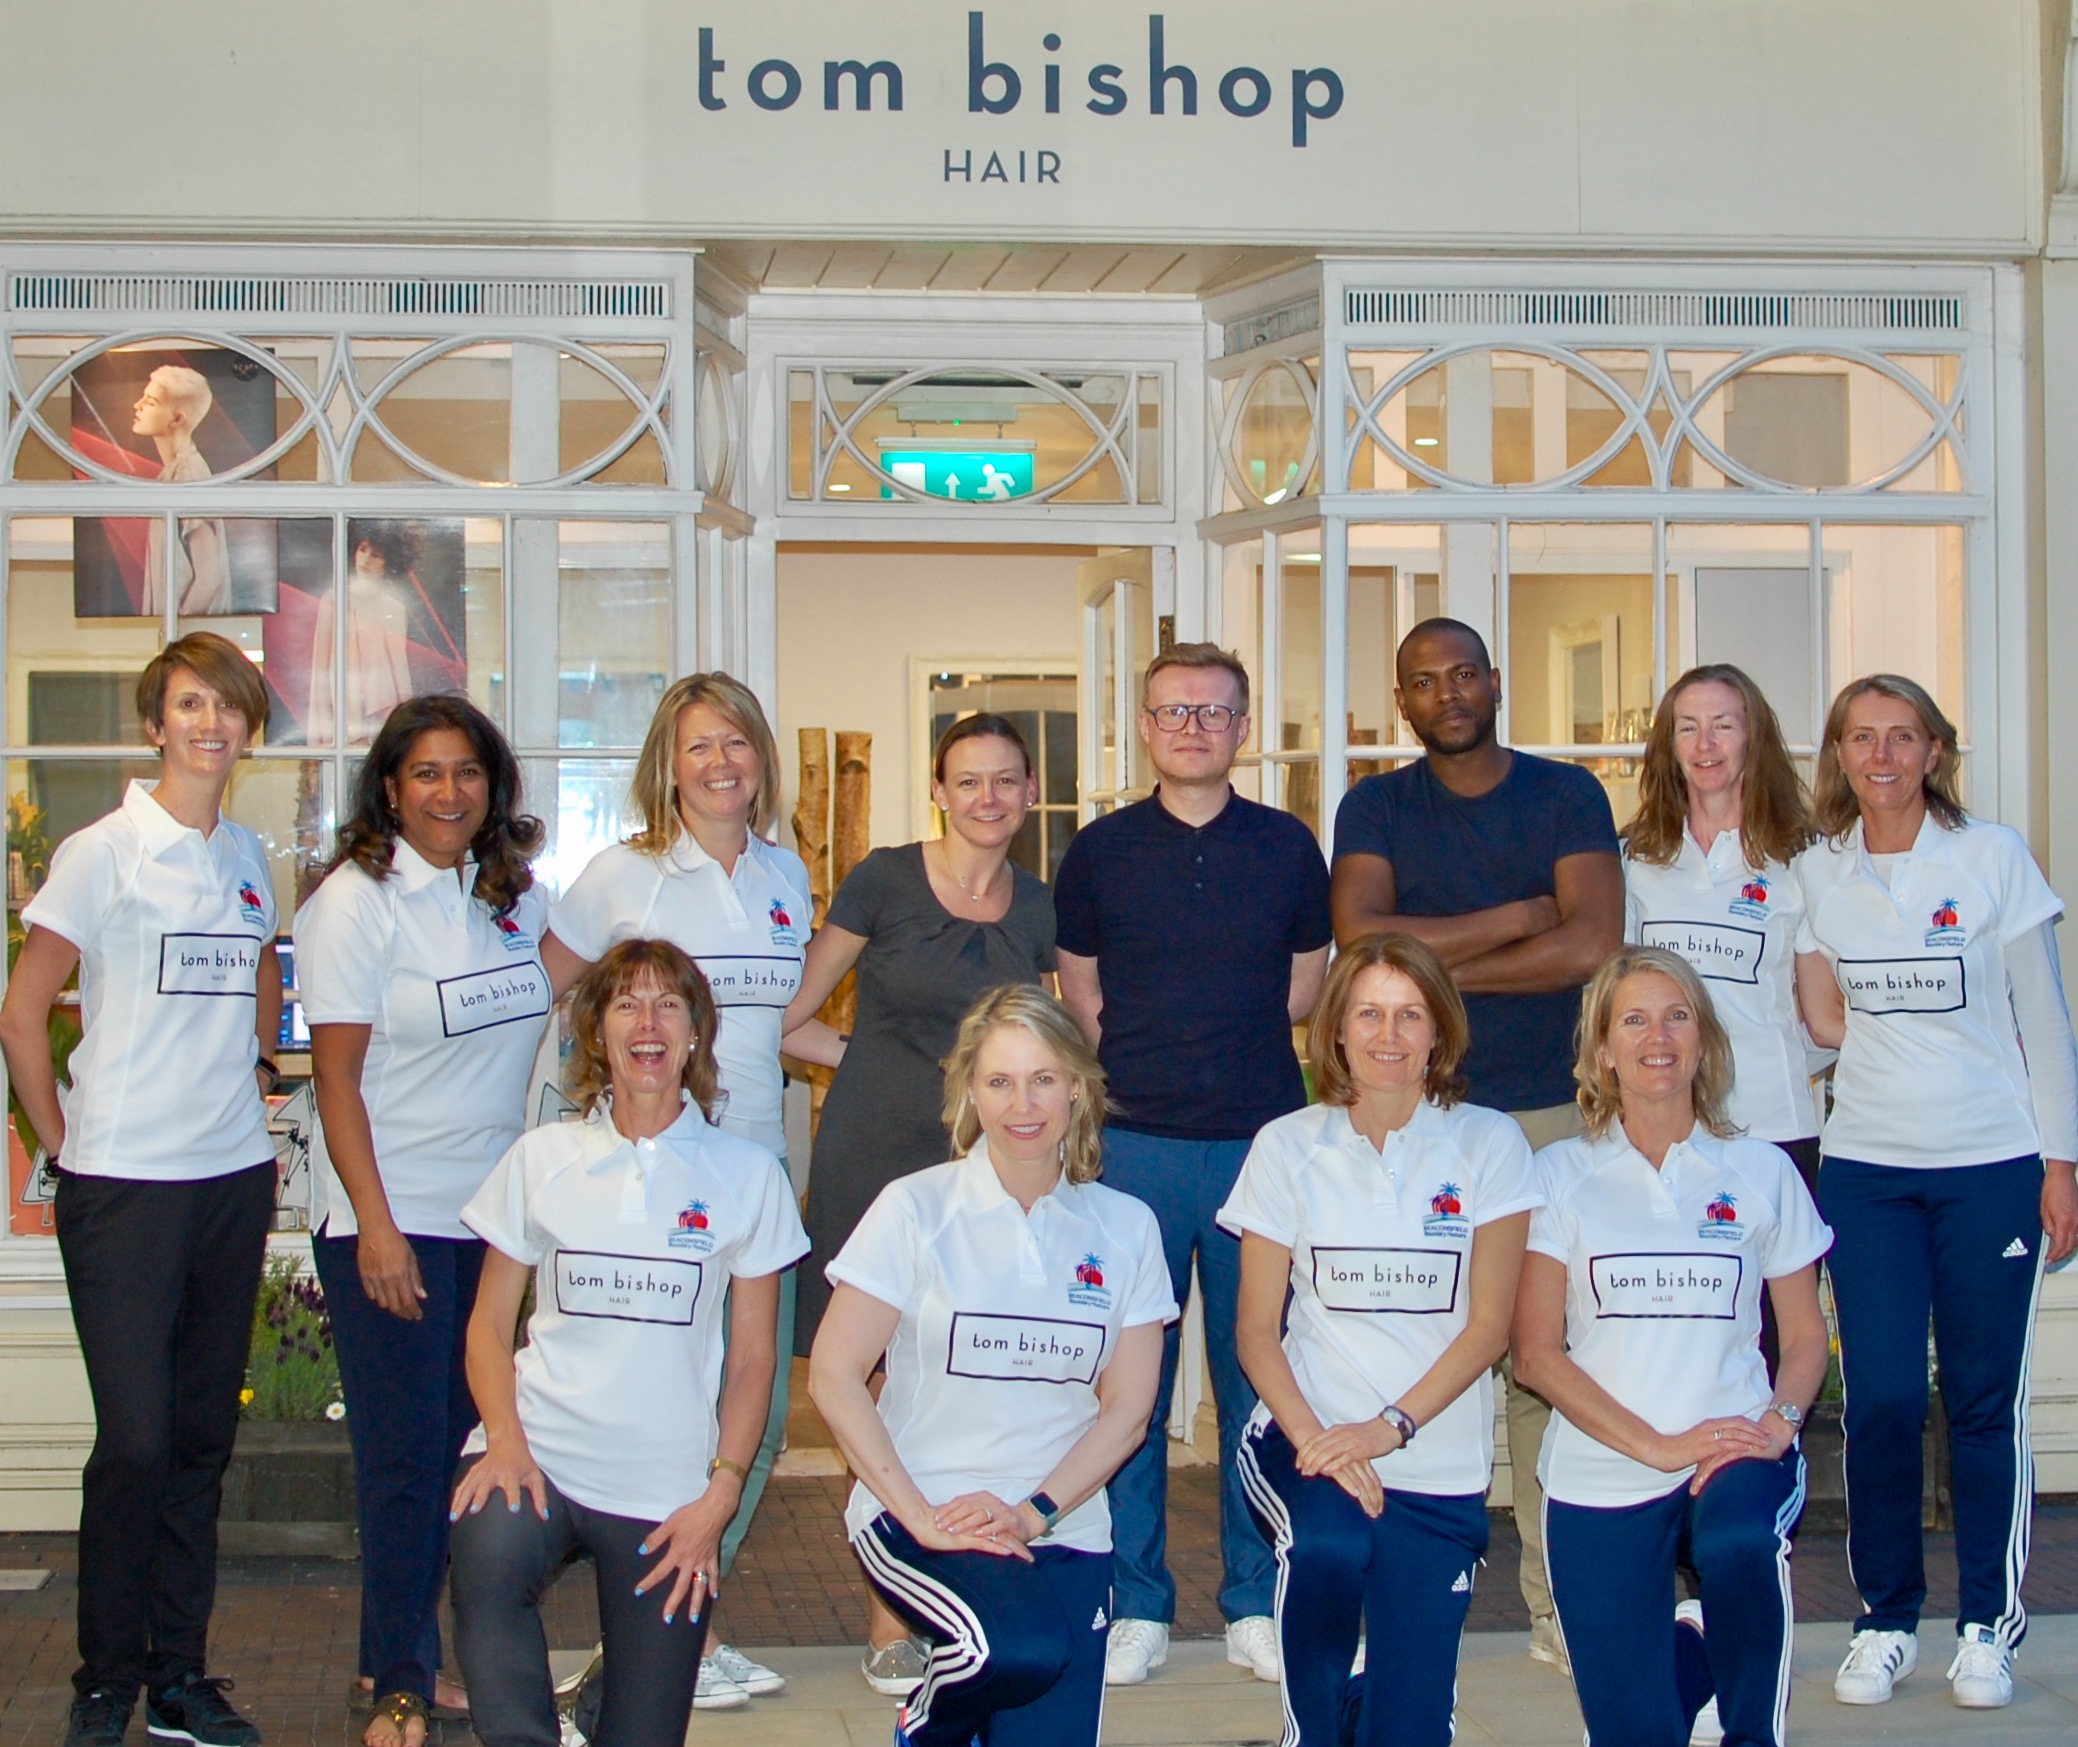 Wednesday night's champagne launch at sponsor Tom Bishop Hair